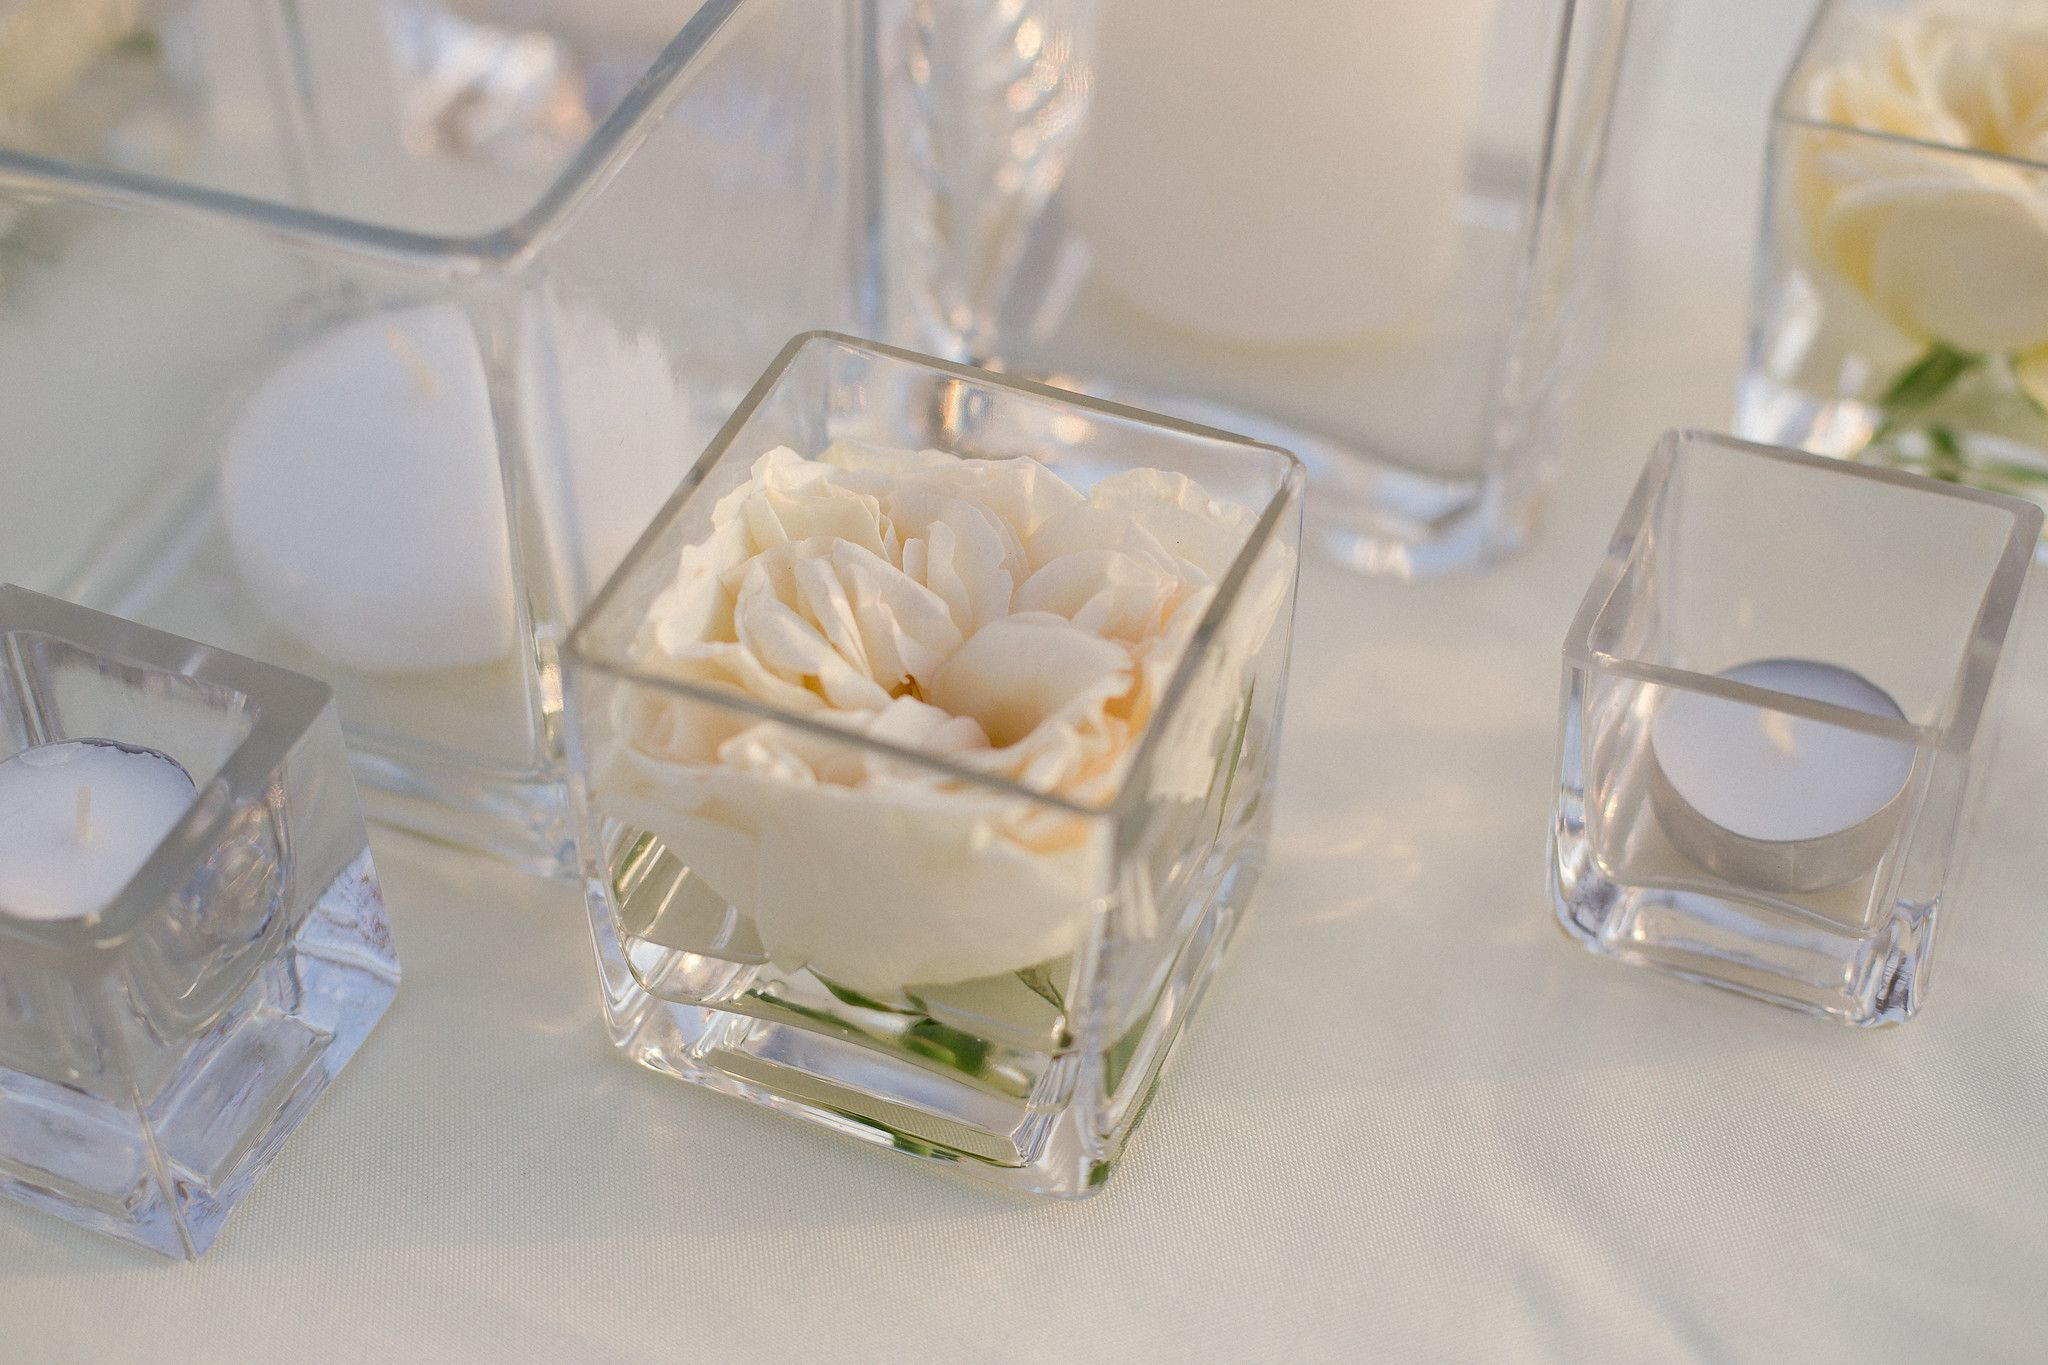 Garden Rose in small vase at wedding venue Sunset da Mona Lisa. Wedding Design by Cabo Wedding Services.